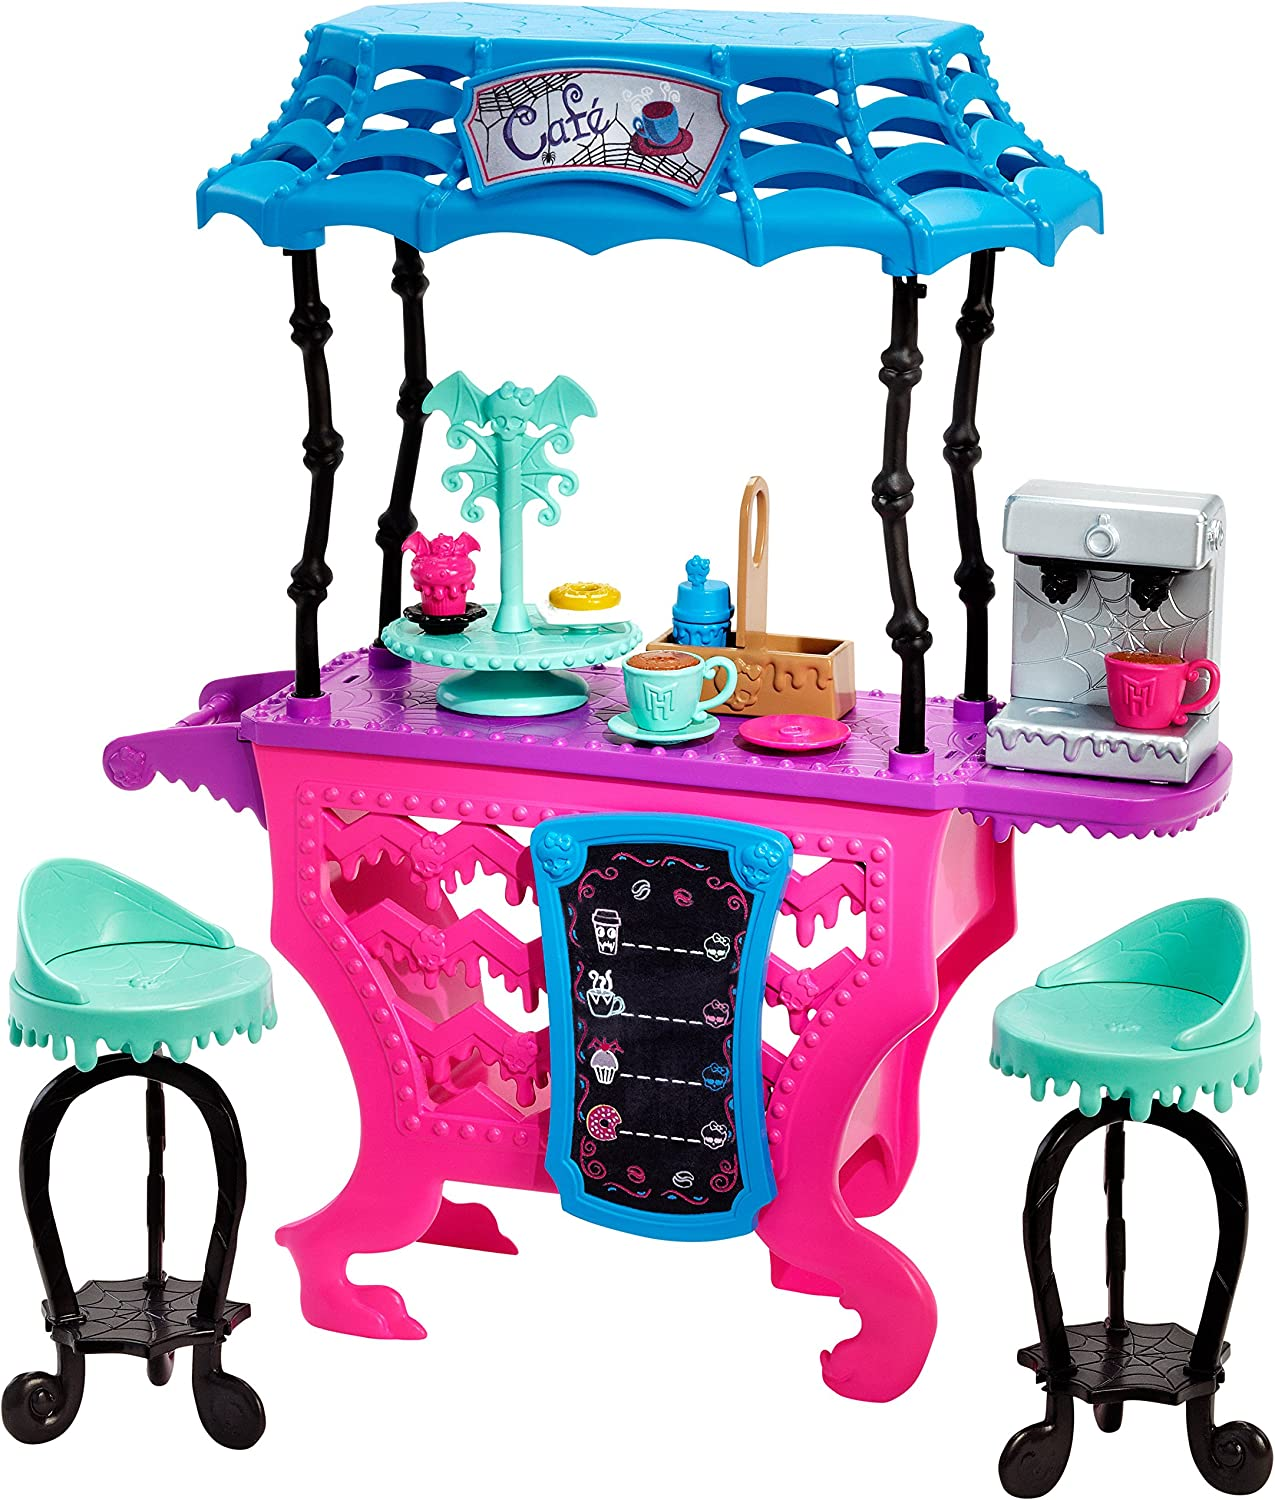 Mattel DNX01 Toy  Monster High  Fright Roast Coffee Deluxe Fashion Doll Cafe Playset